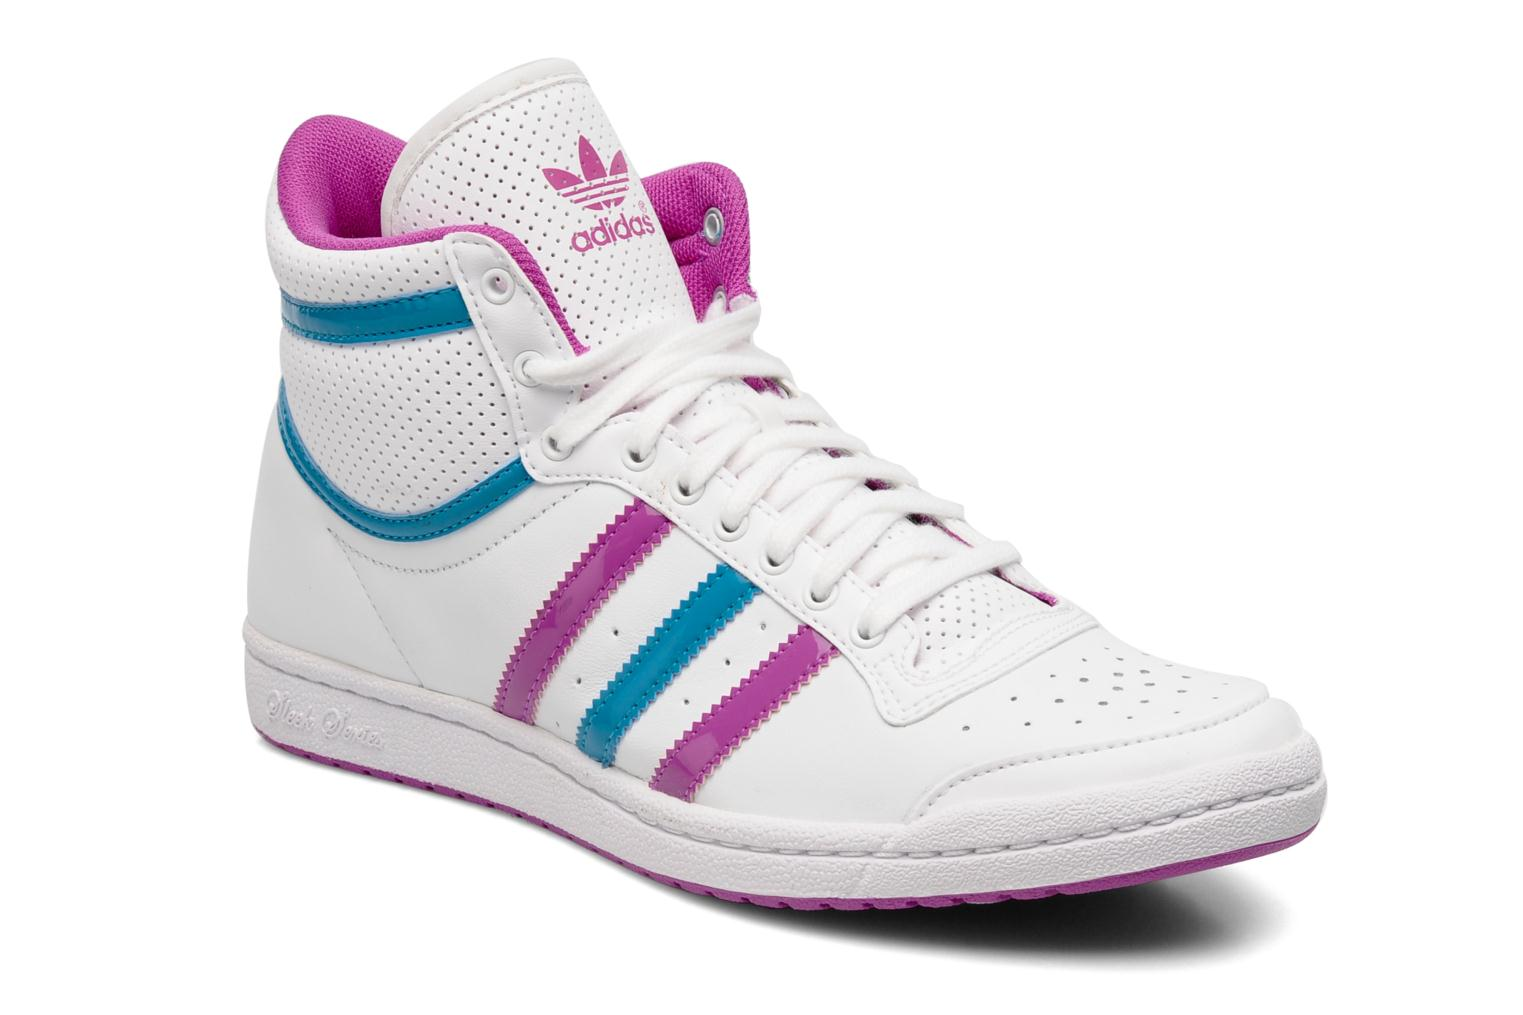 Foto Tenis Moda Adidas Originals Top Ten Sleek Mujer